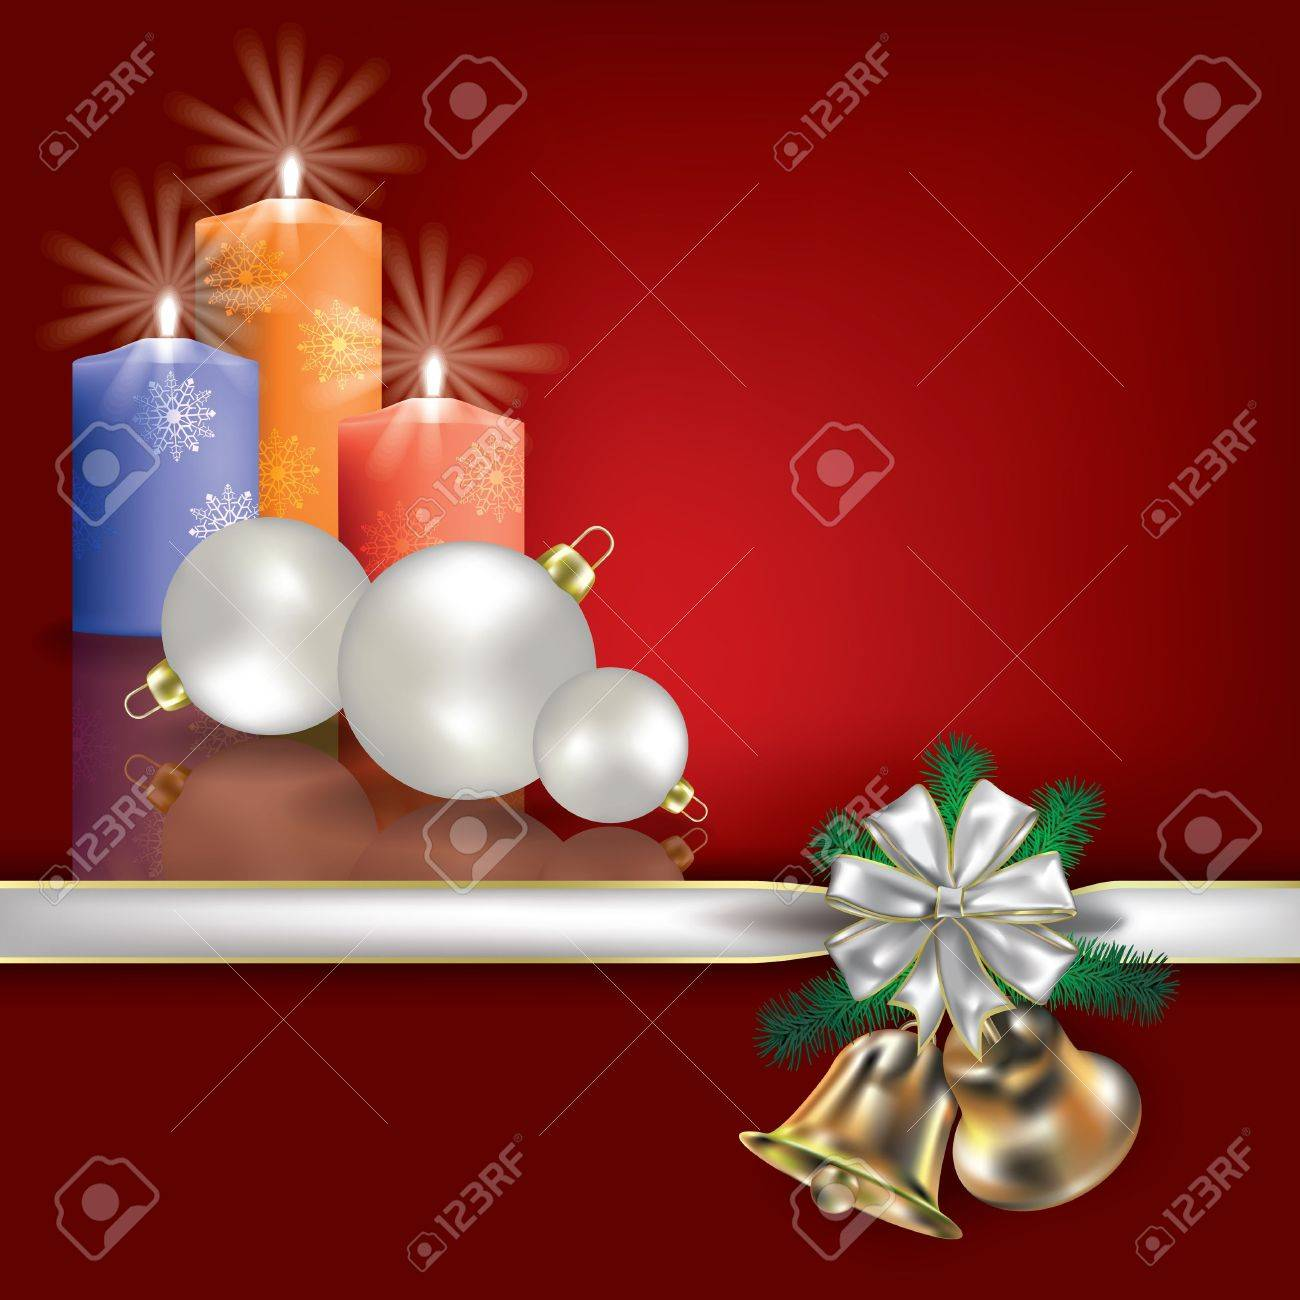 Abstract Christmas red greeting with candles and white gift ribbons Stock Vector - 10502753